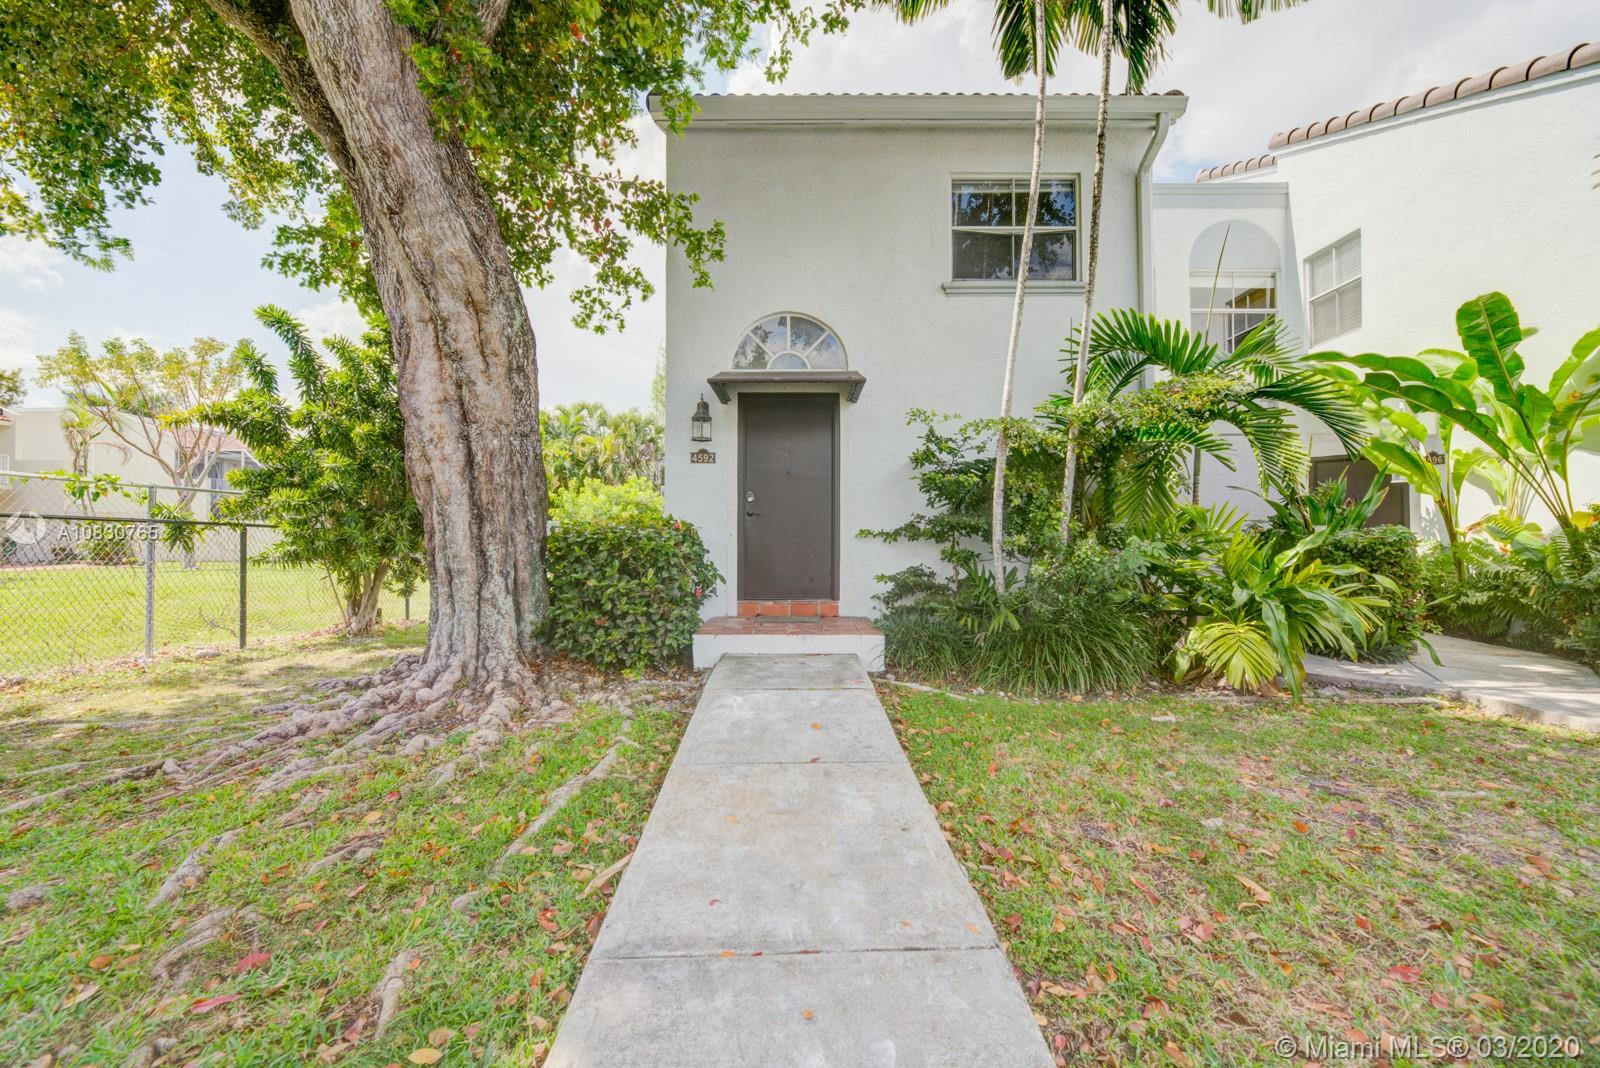 4592 NW 97th Pl #272 For Sale A10830765, FL